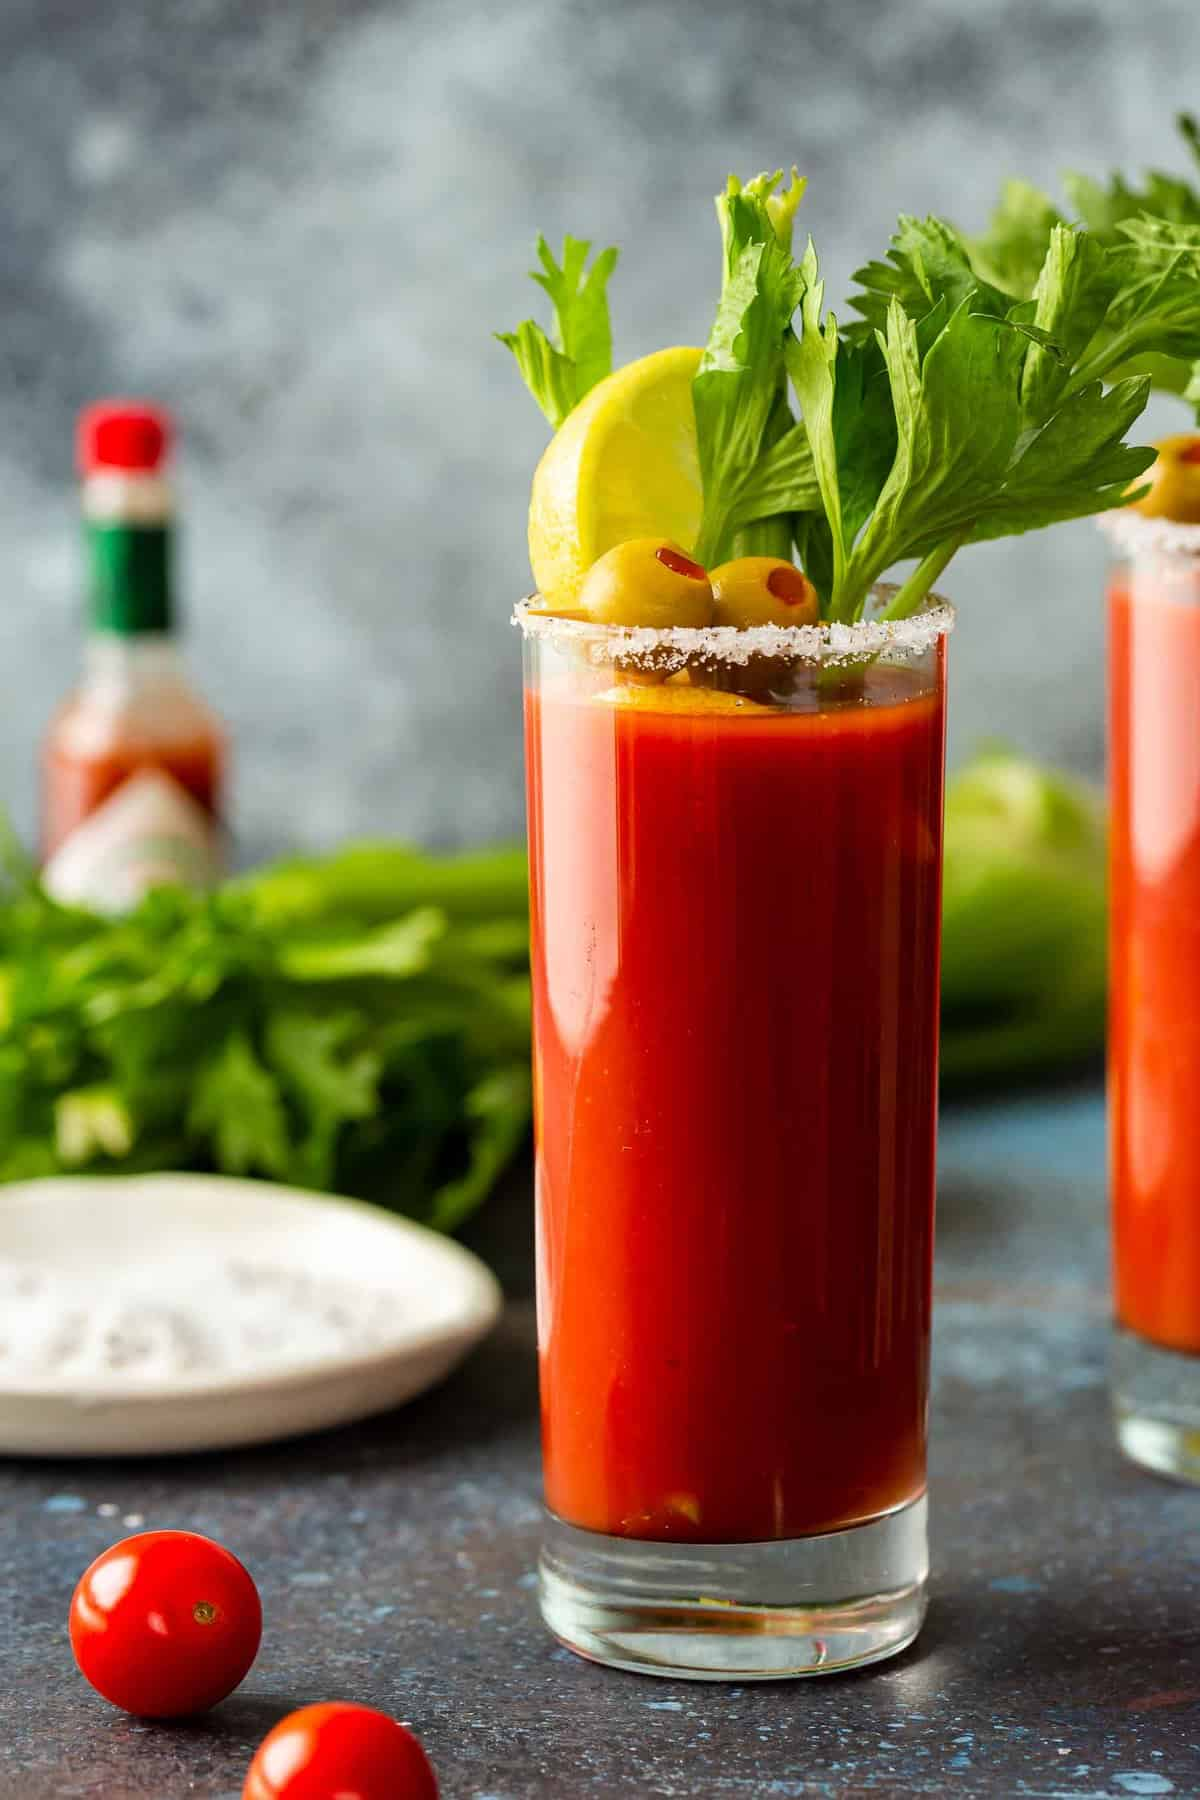 Best Bloody Mary Recipe - How to Make a Bloody Mary - (VIDEO)